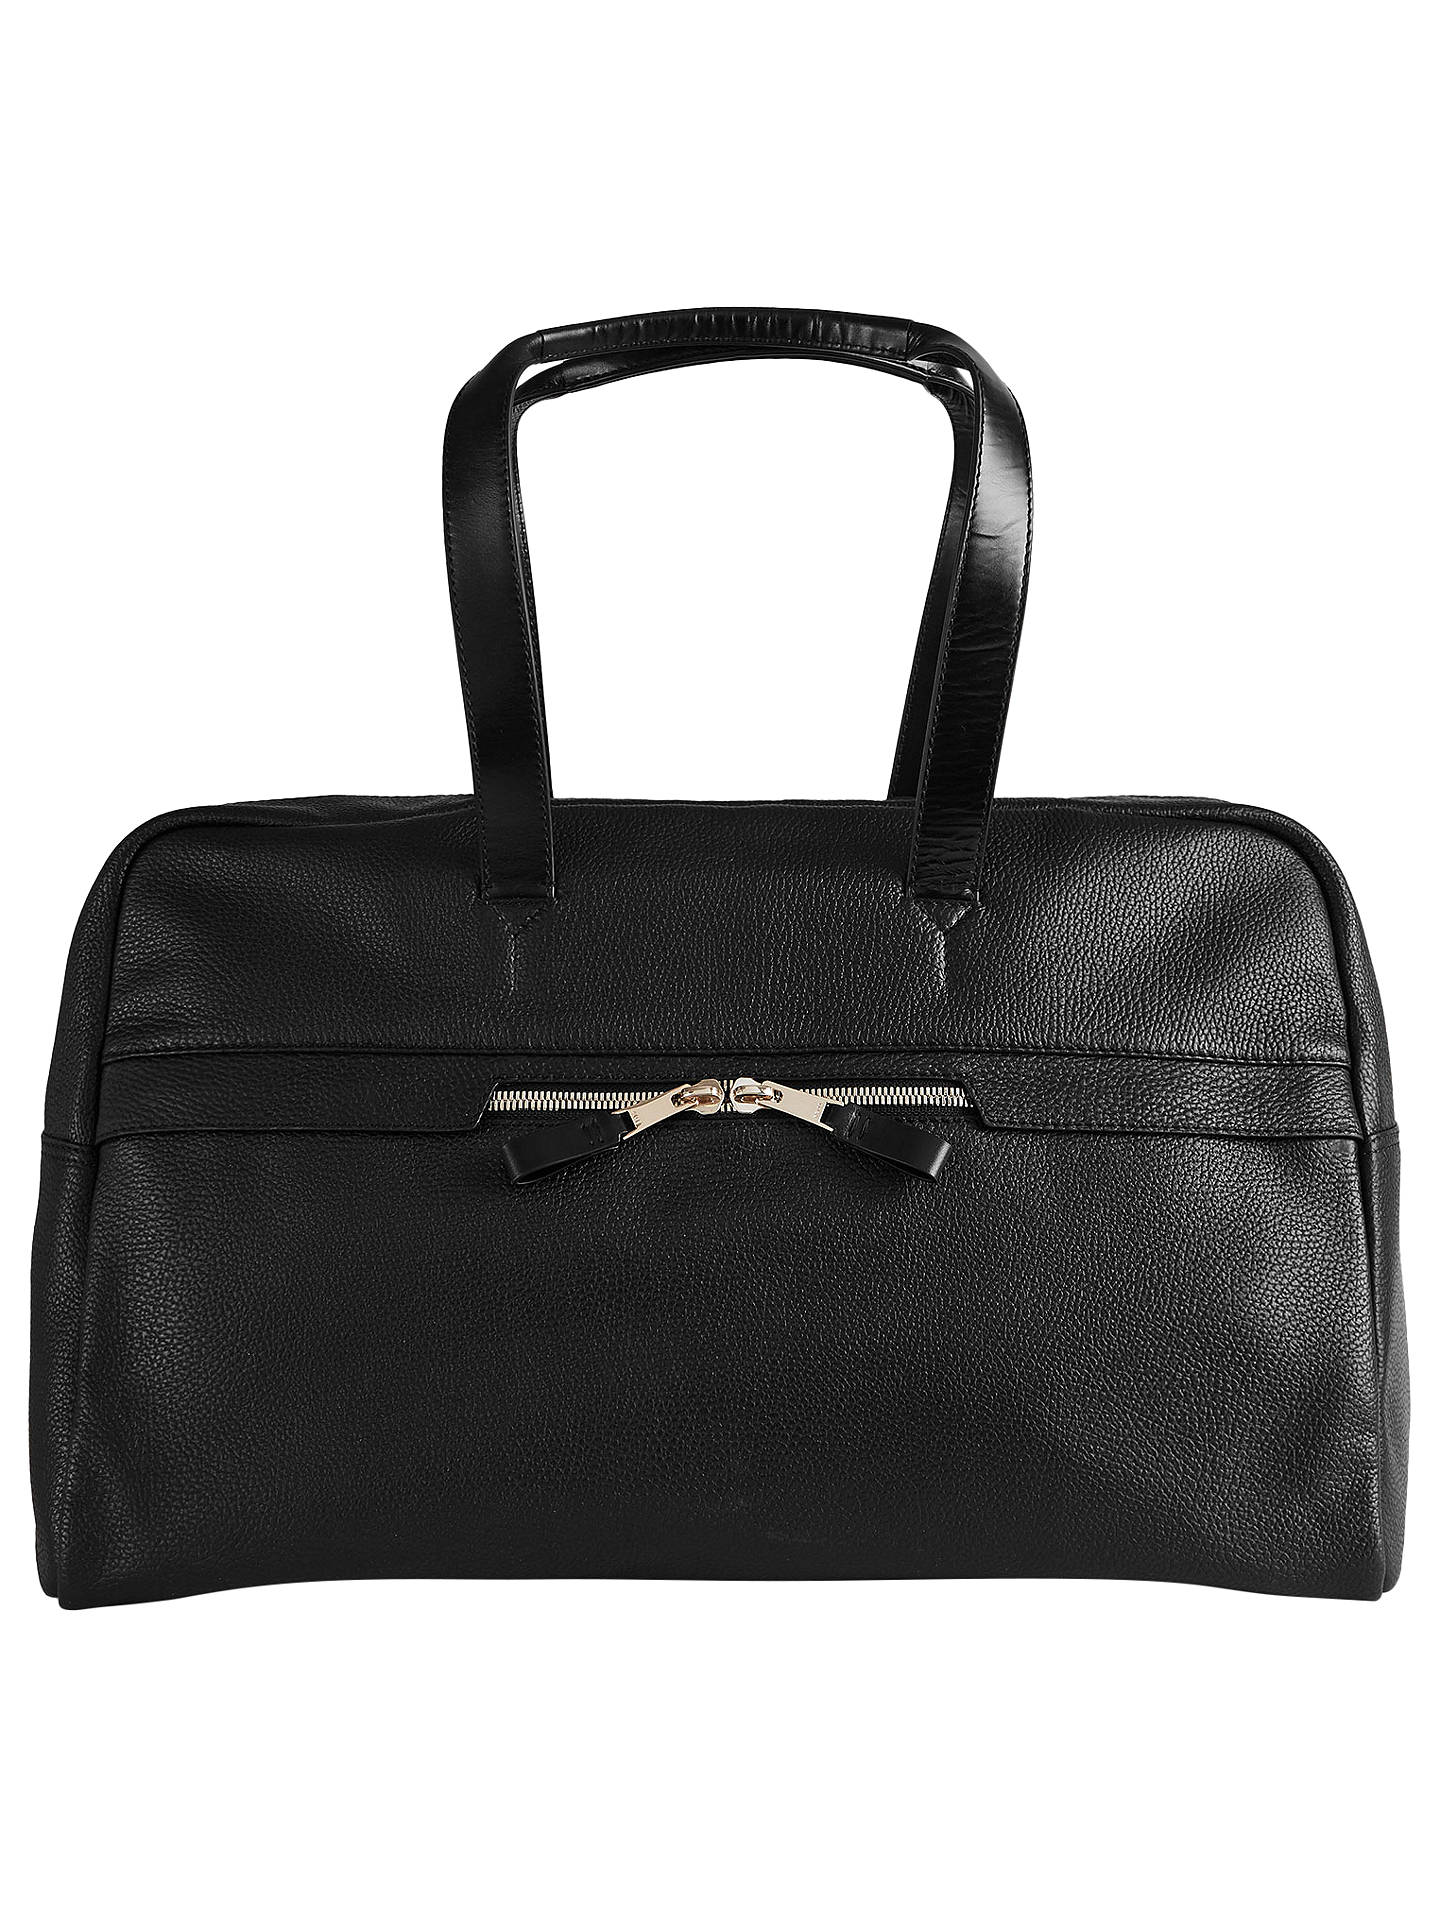 BuyReiss Bournemouth Leather Duffle Bag, Black Online at johnlewis.com